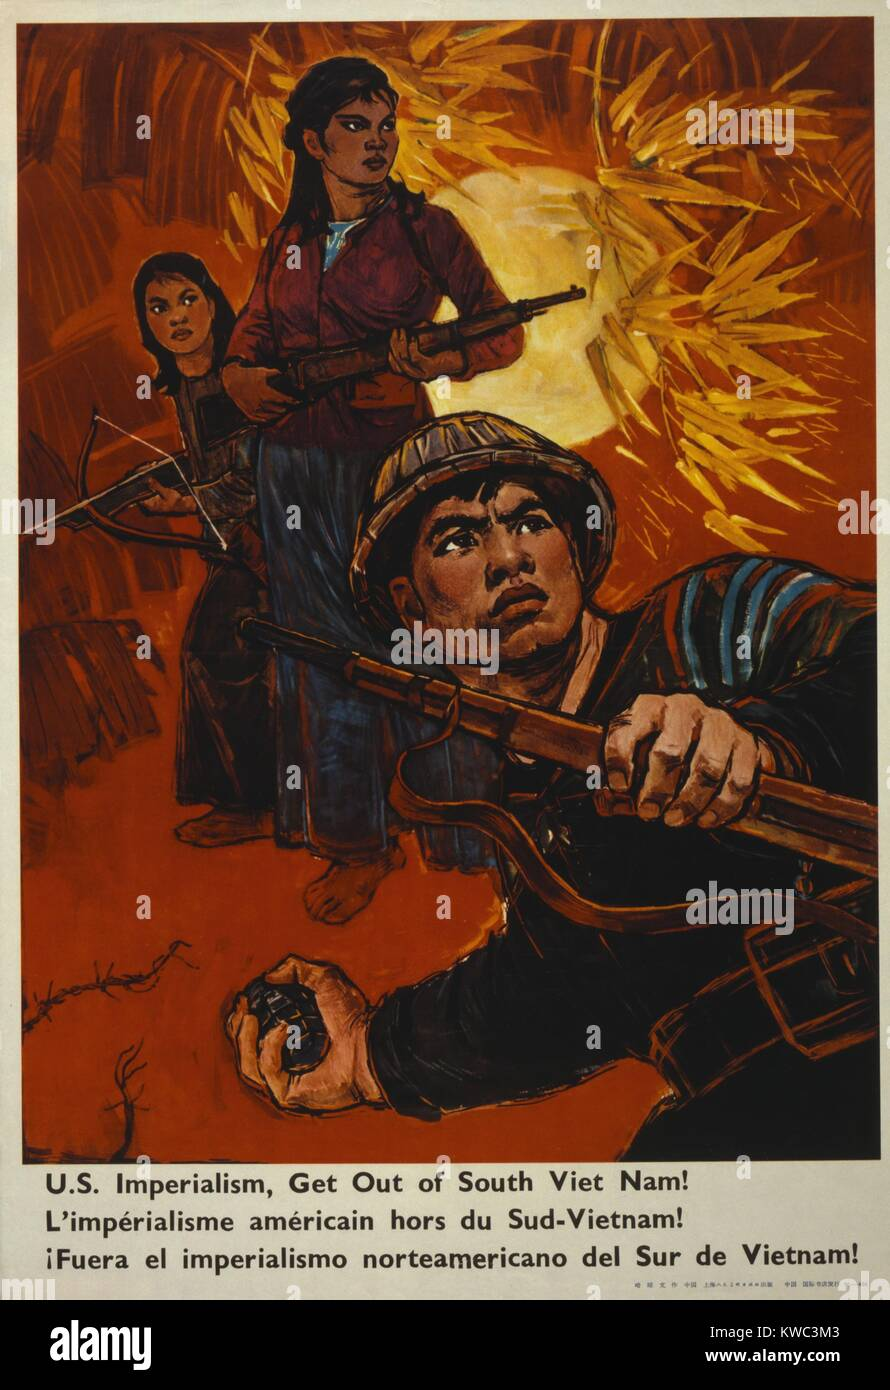 Communist China Poster reads, 'U.S. imperialism, get out of South Viet Nam!' Ca. 1970. Poster depicts men - Stock Image